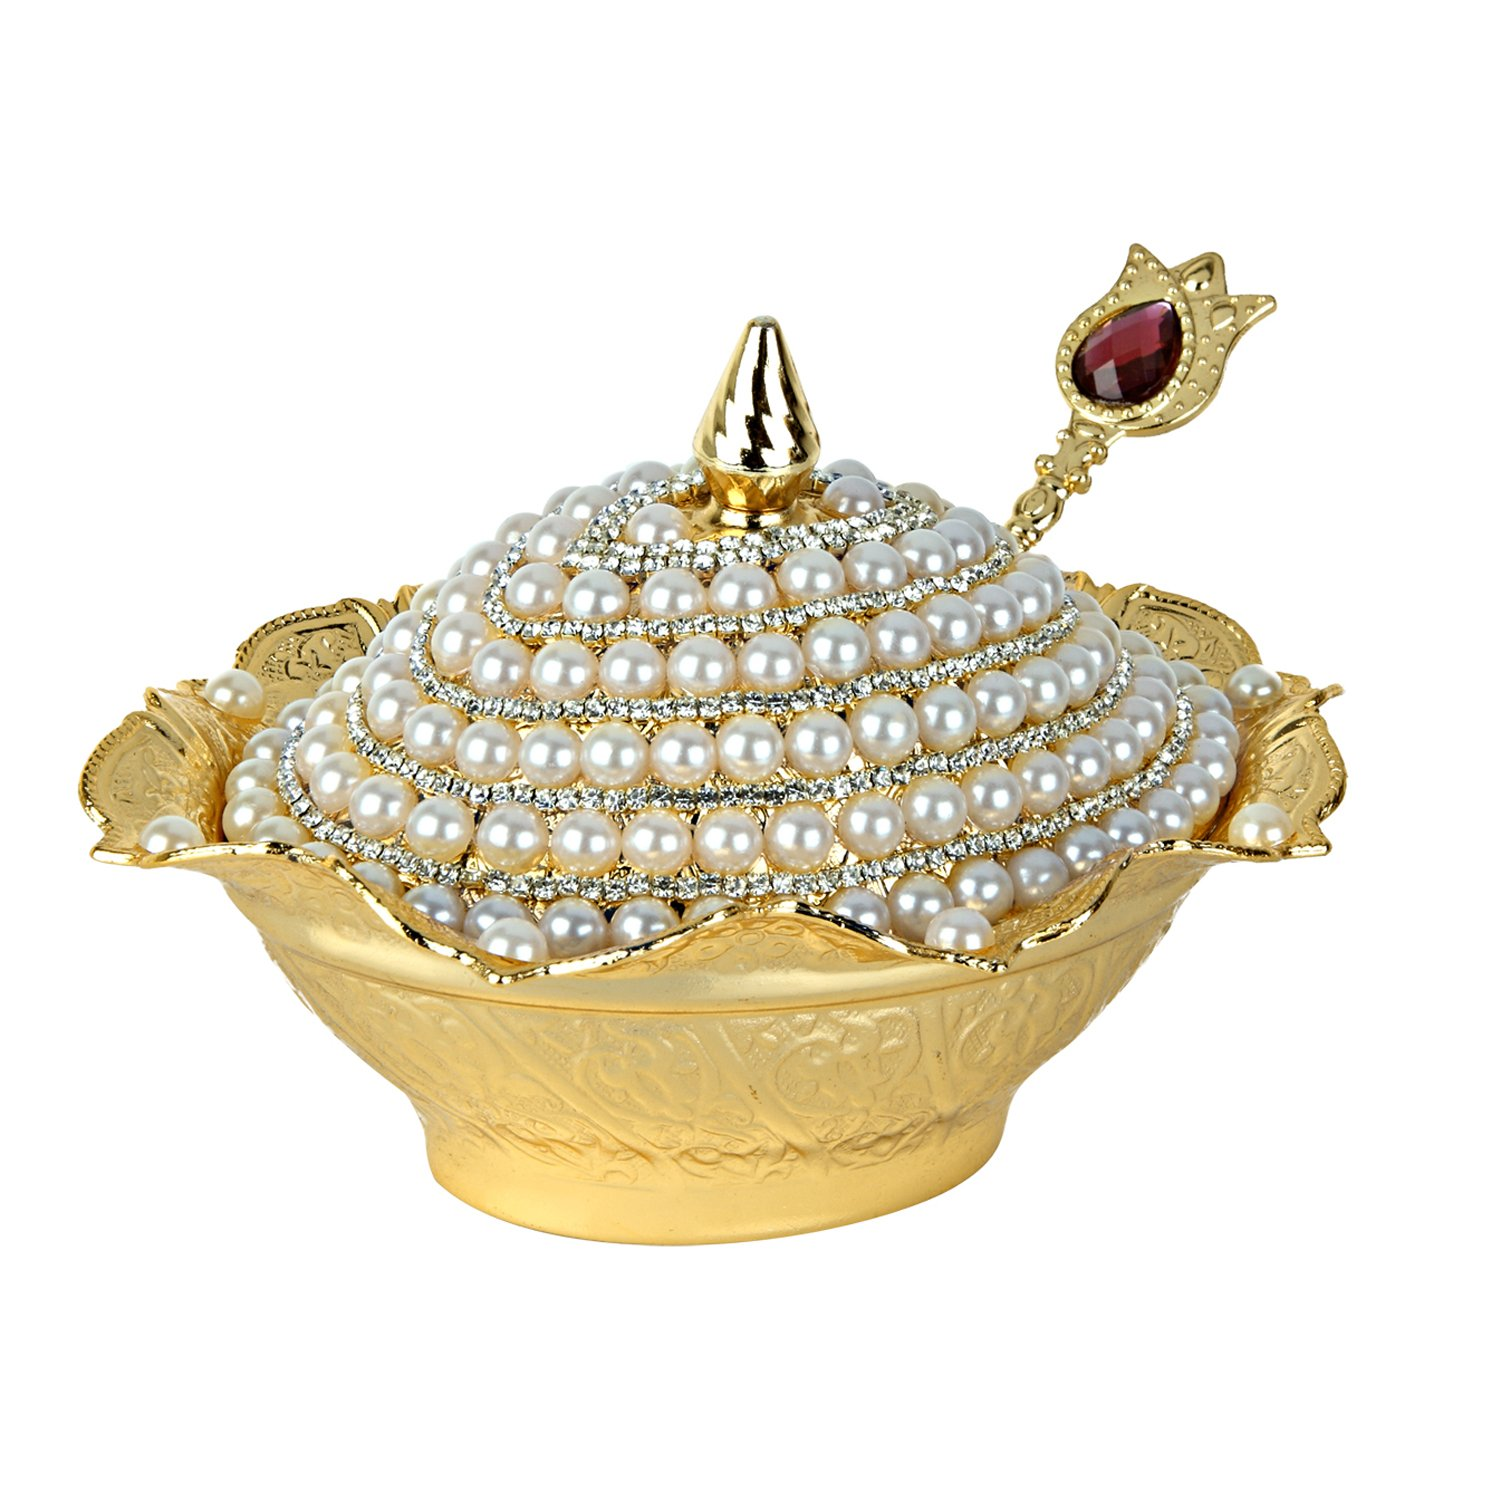 Candy Bowl Swarovski Crystal and Pearl Coated Handmade Brass Sugar Chocolate Serving Dish For Gift